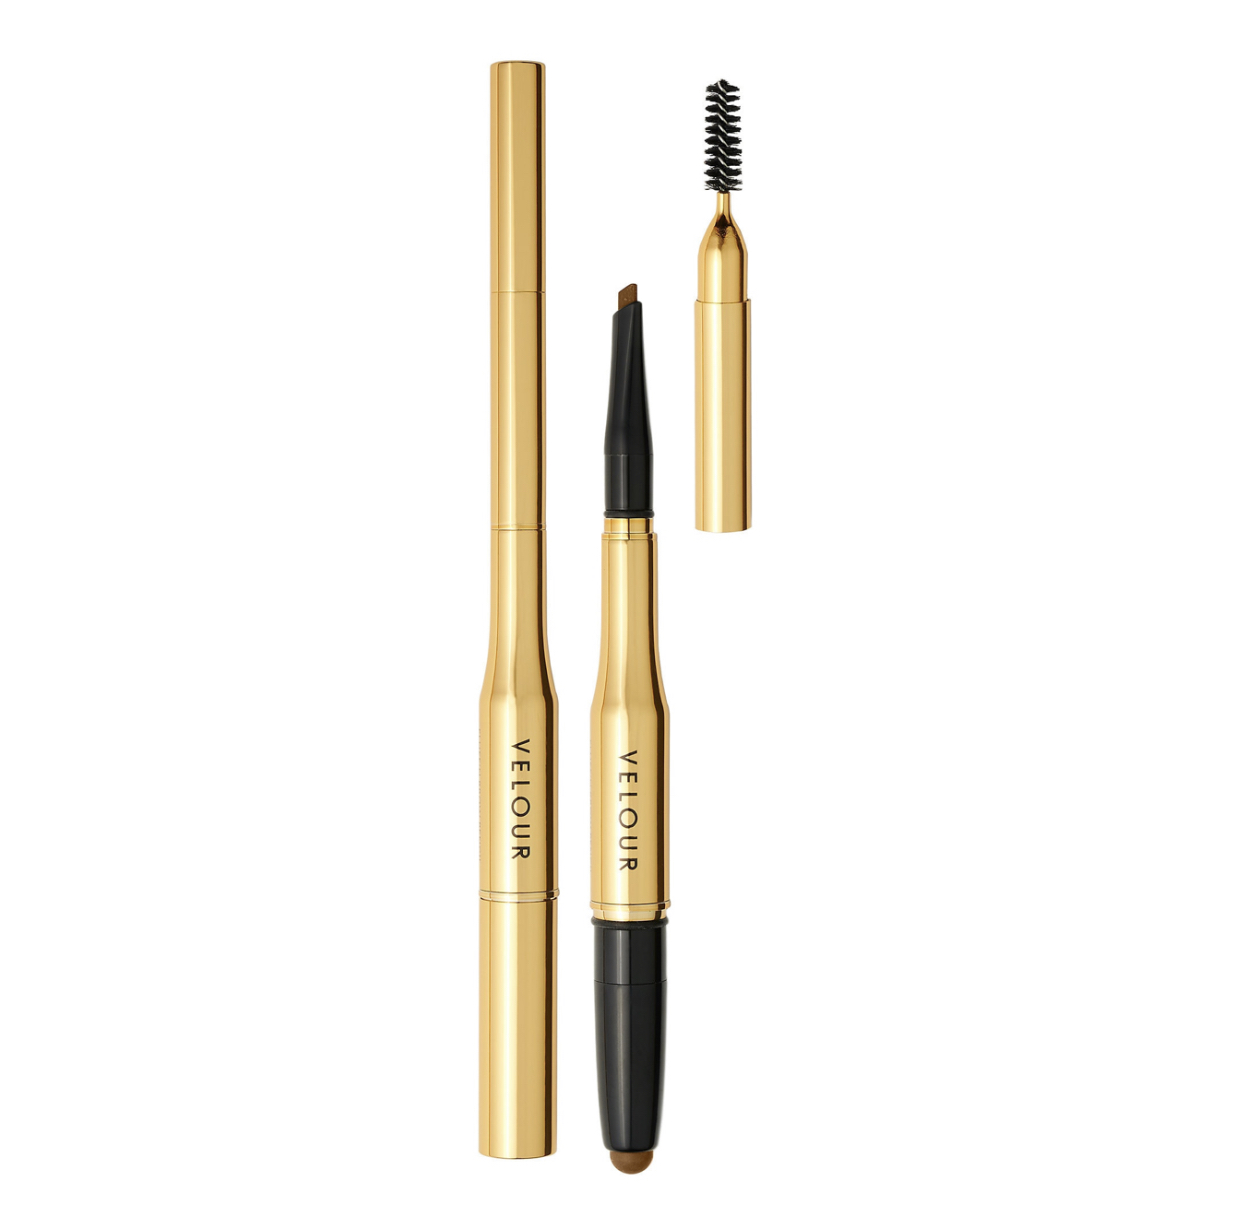 Velour Fluff 'n Brow 3-in-1 Brow Pencil and Balm